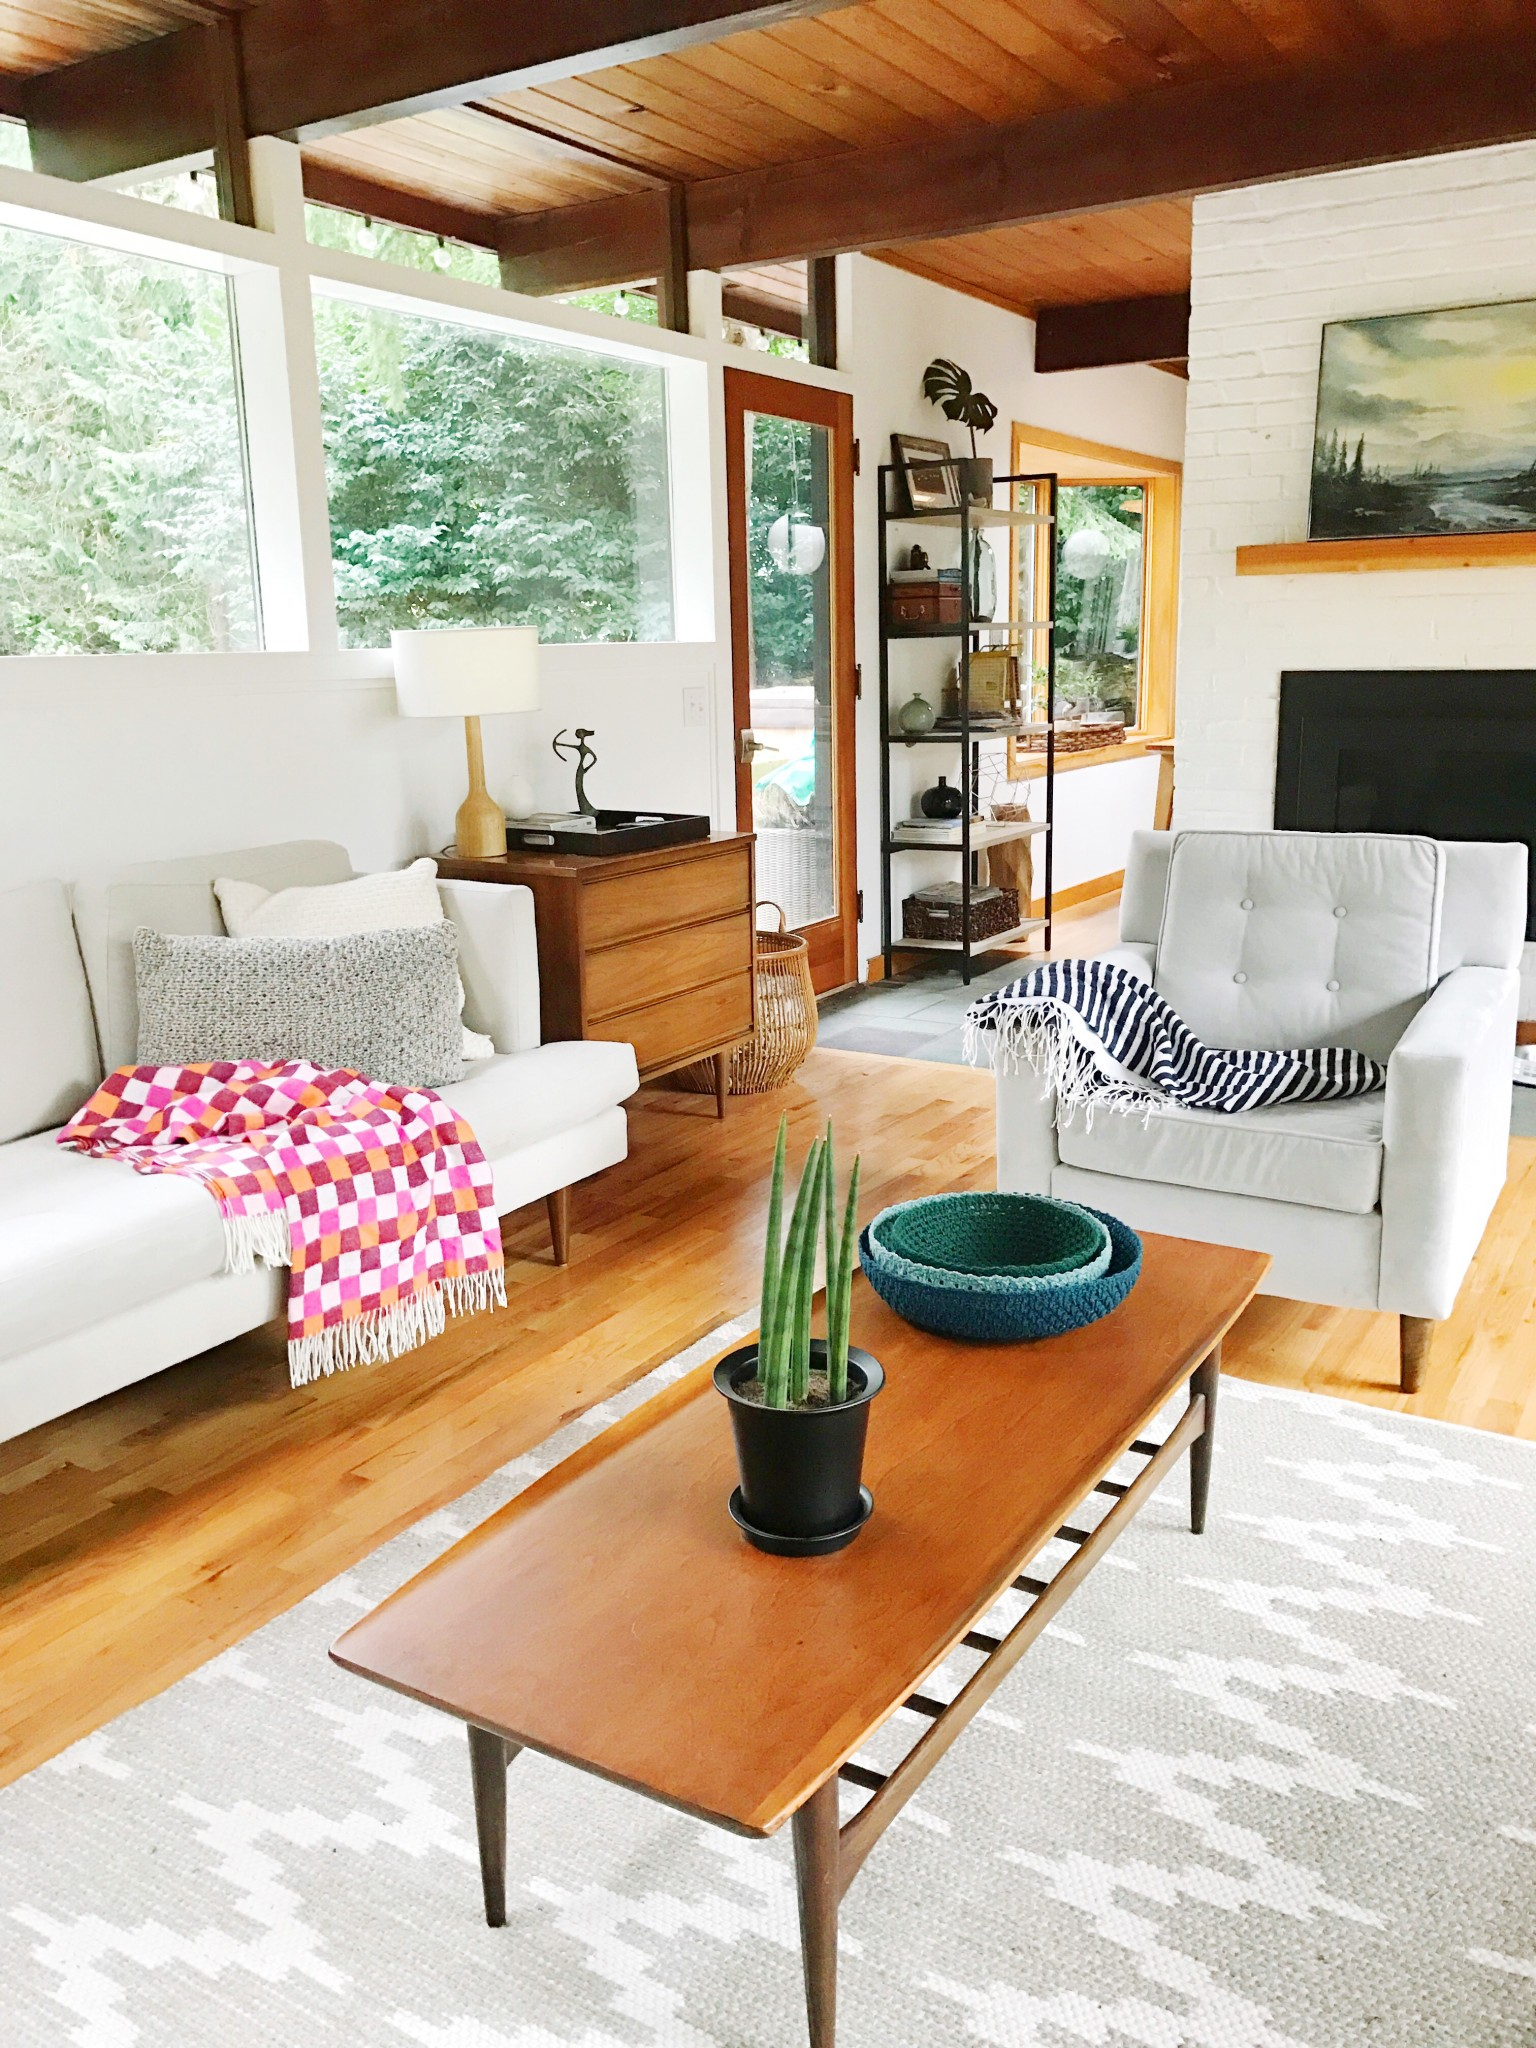 Audrey McGill living room with an updated design approach